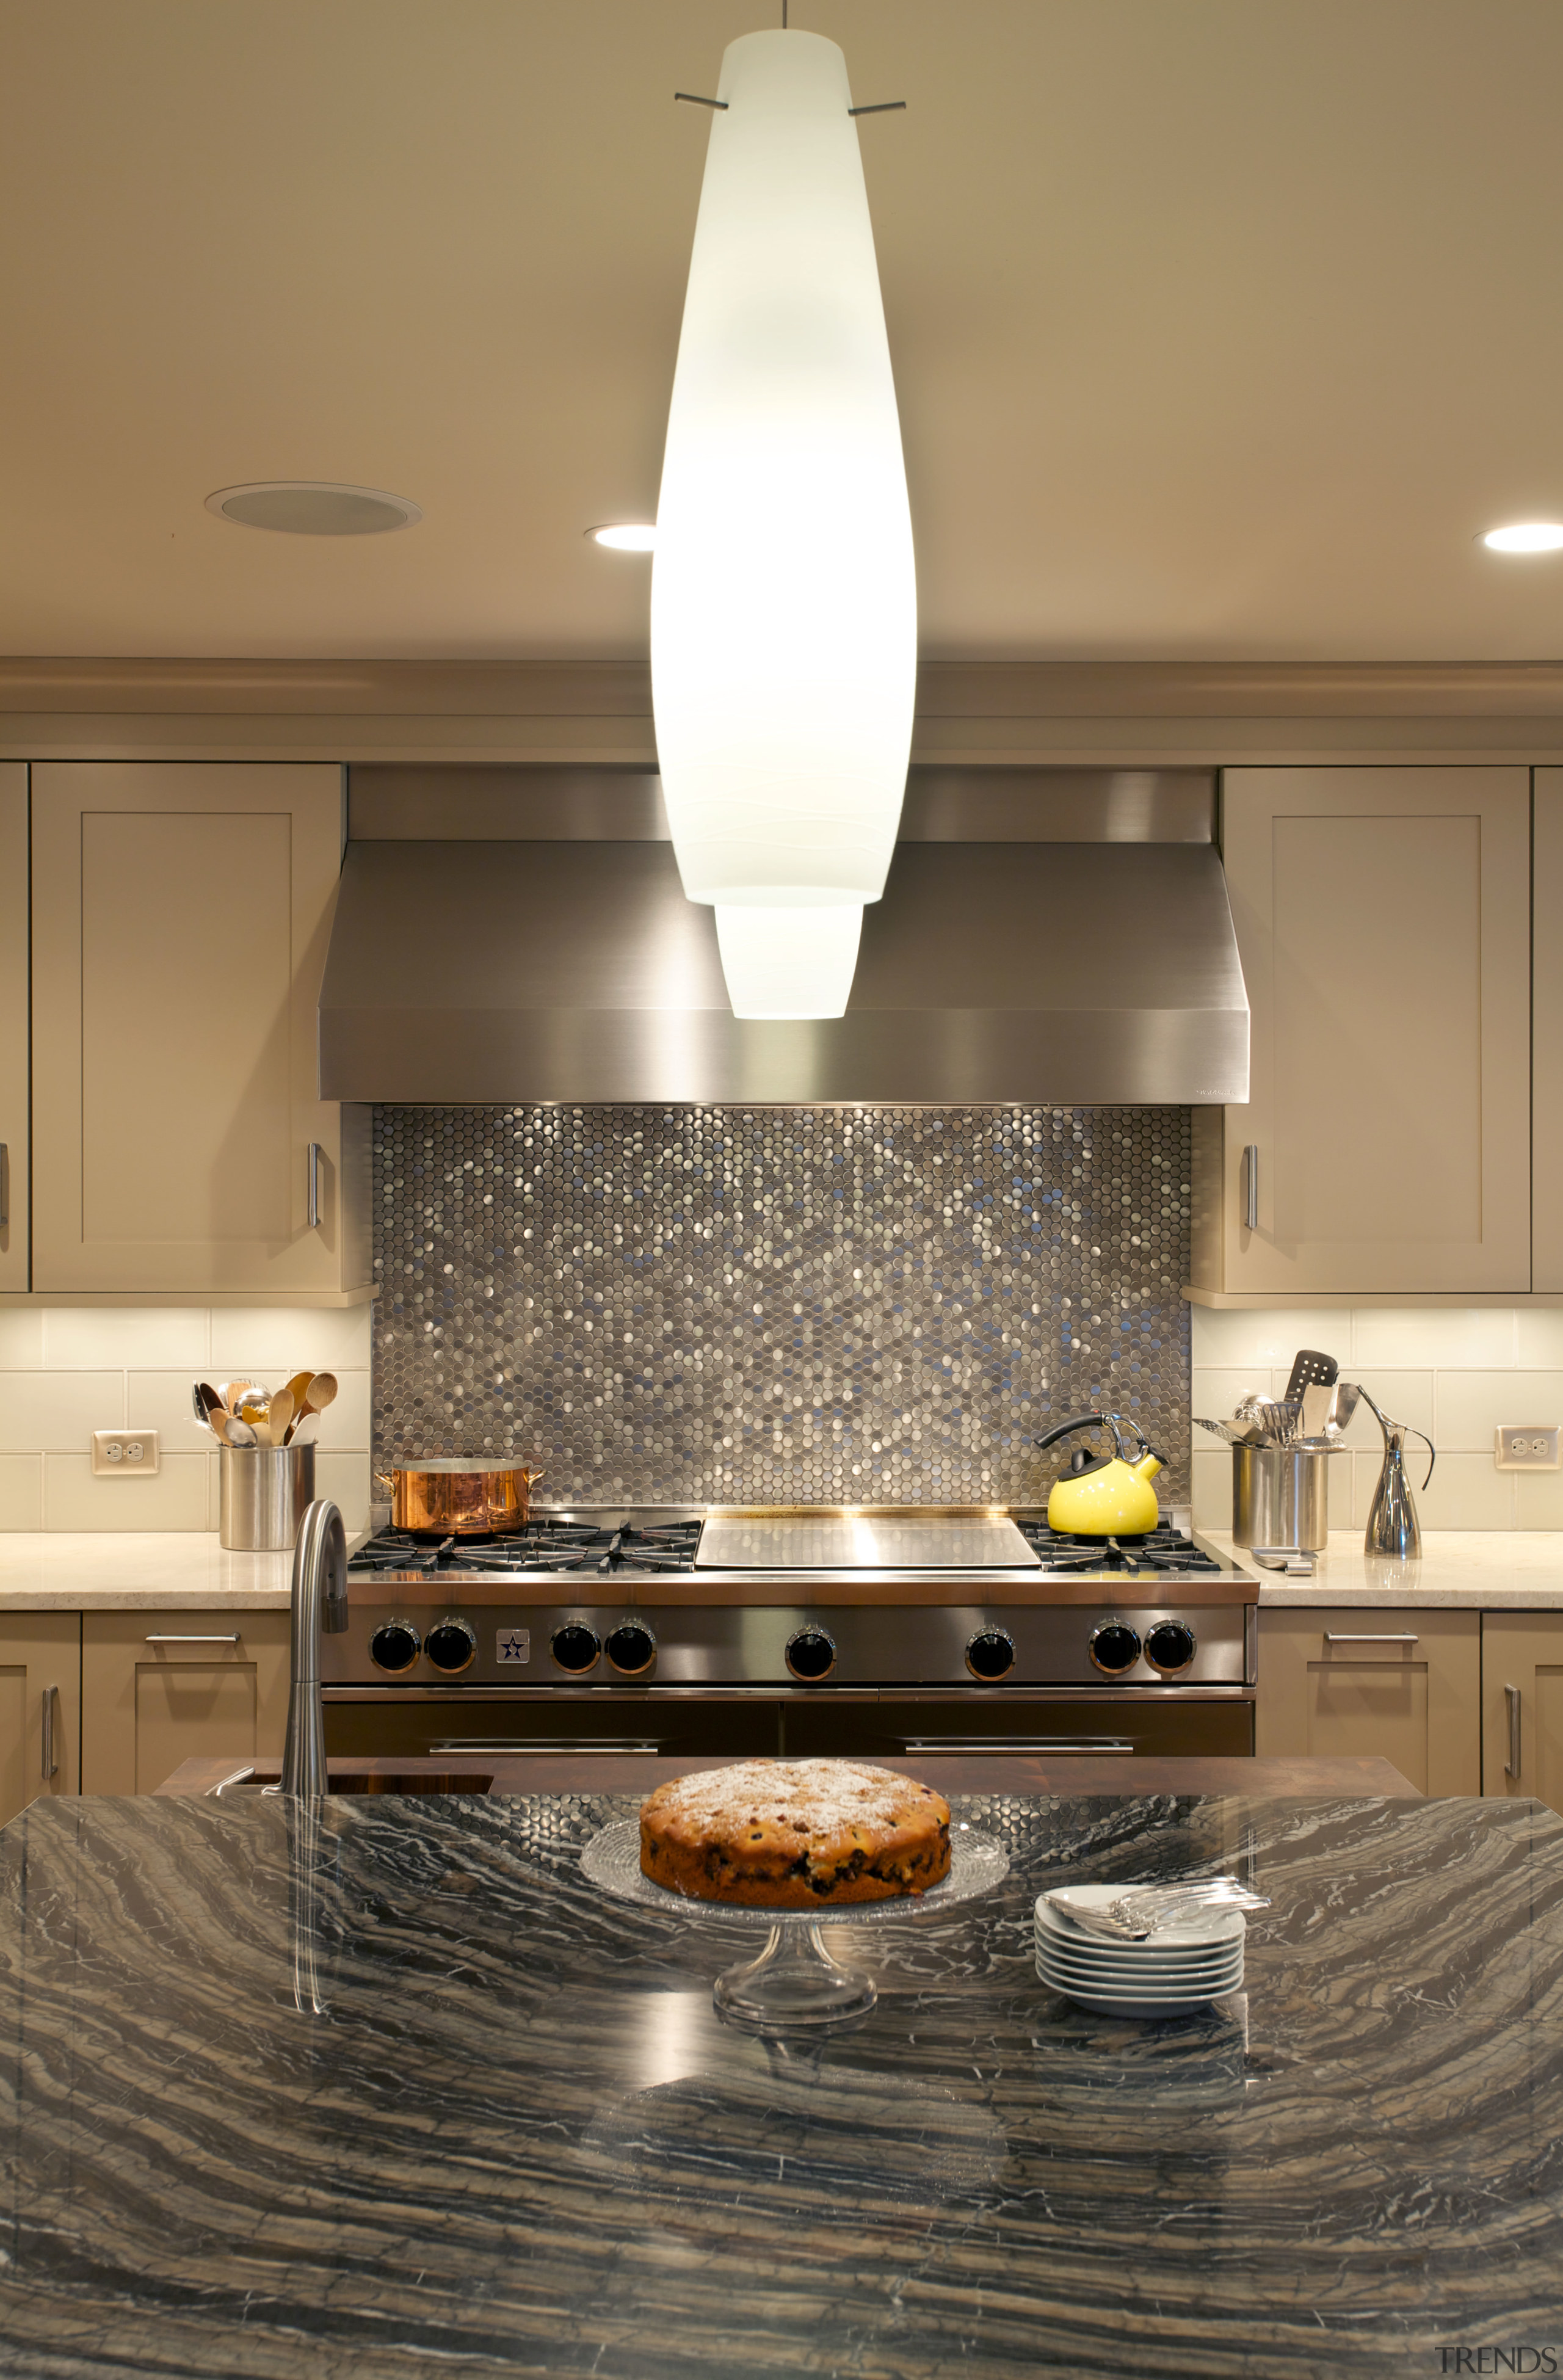 The new kitchen features an exotic granite island countertop, flooring, interior design, kitchen, light fixture, room, under cabinet lighting, brown